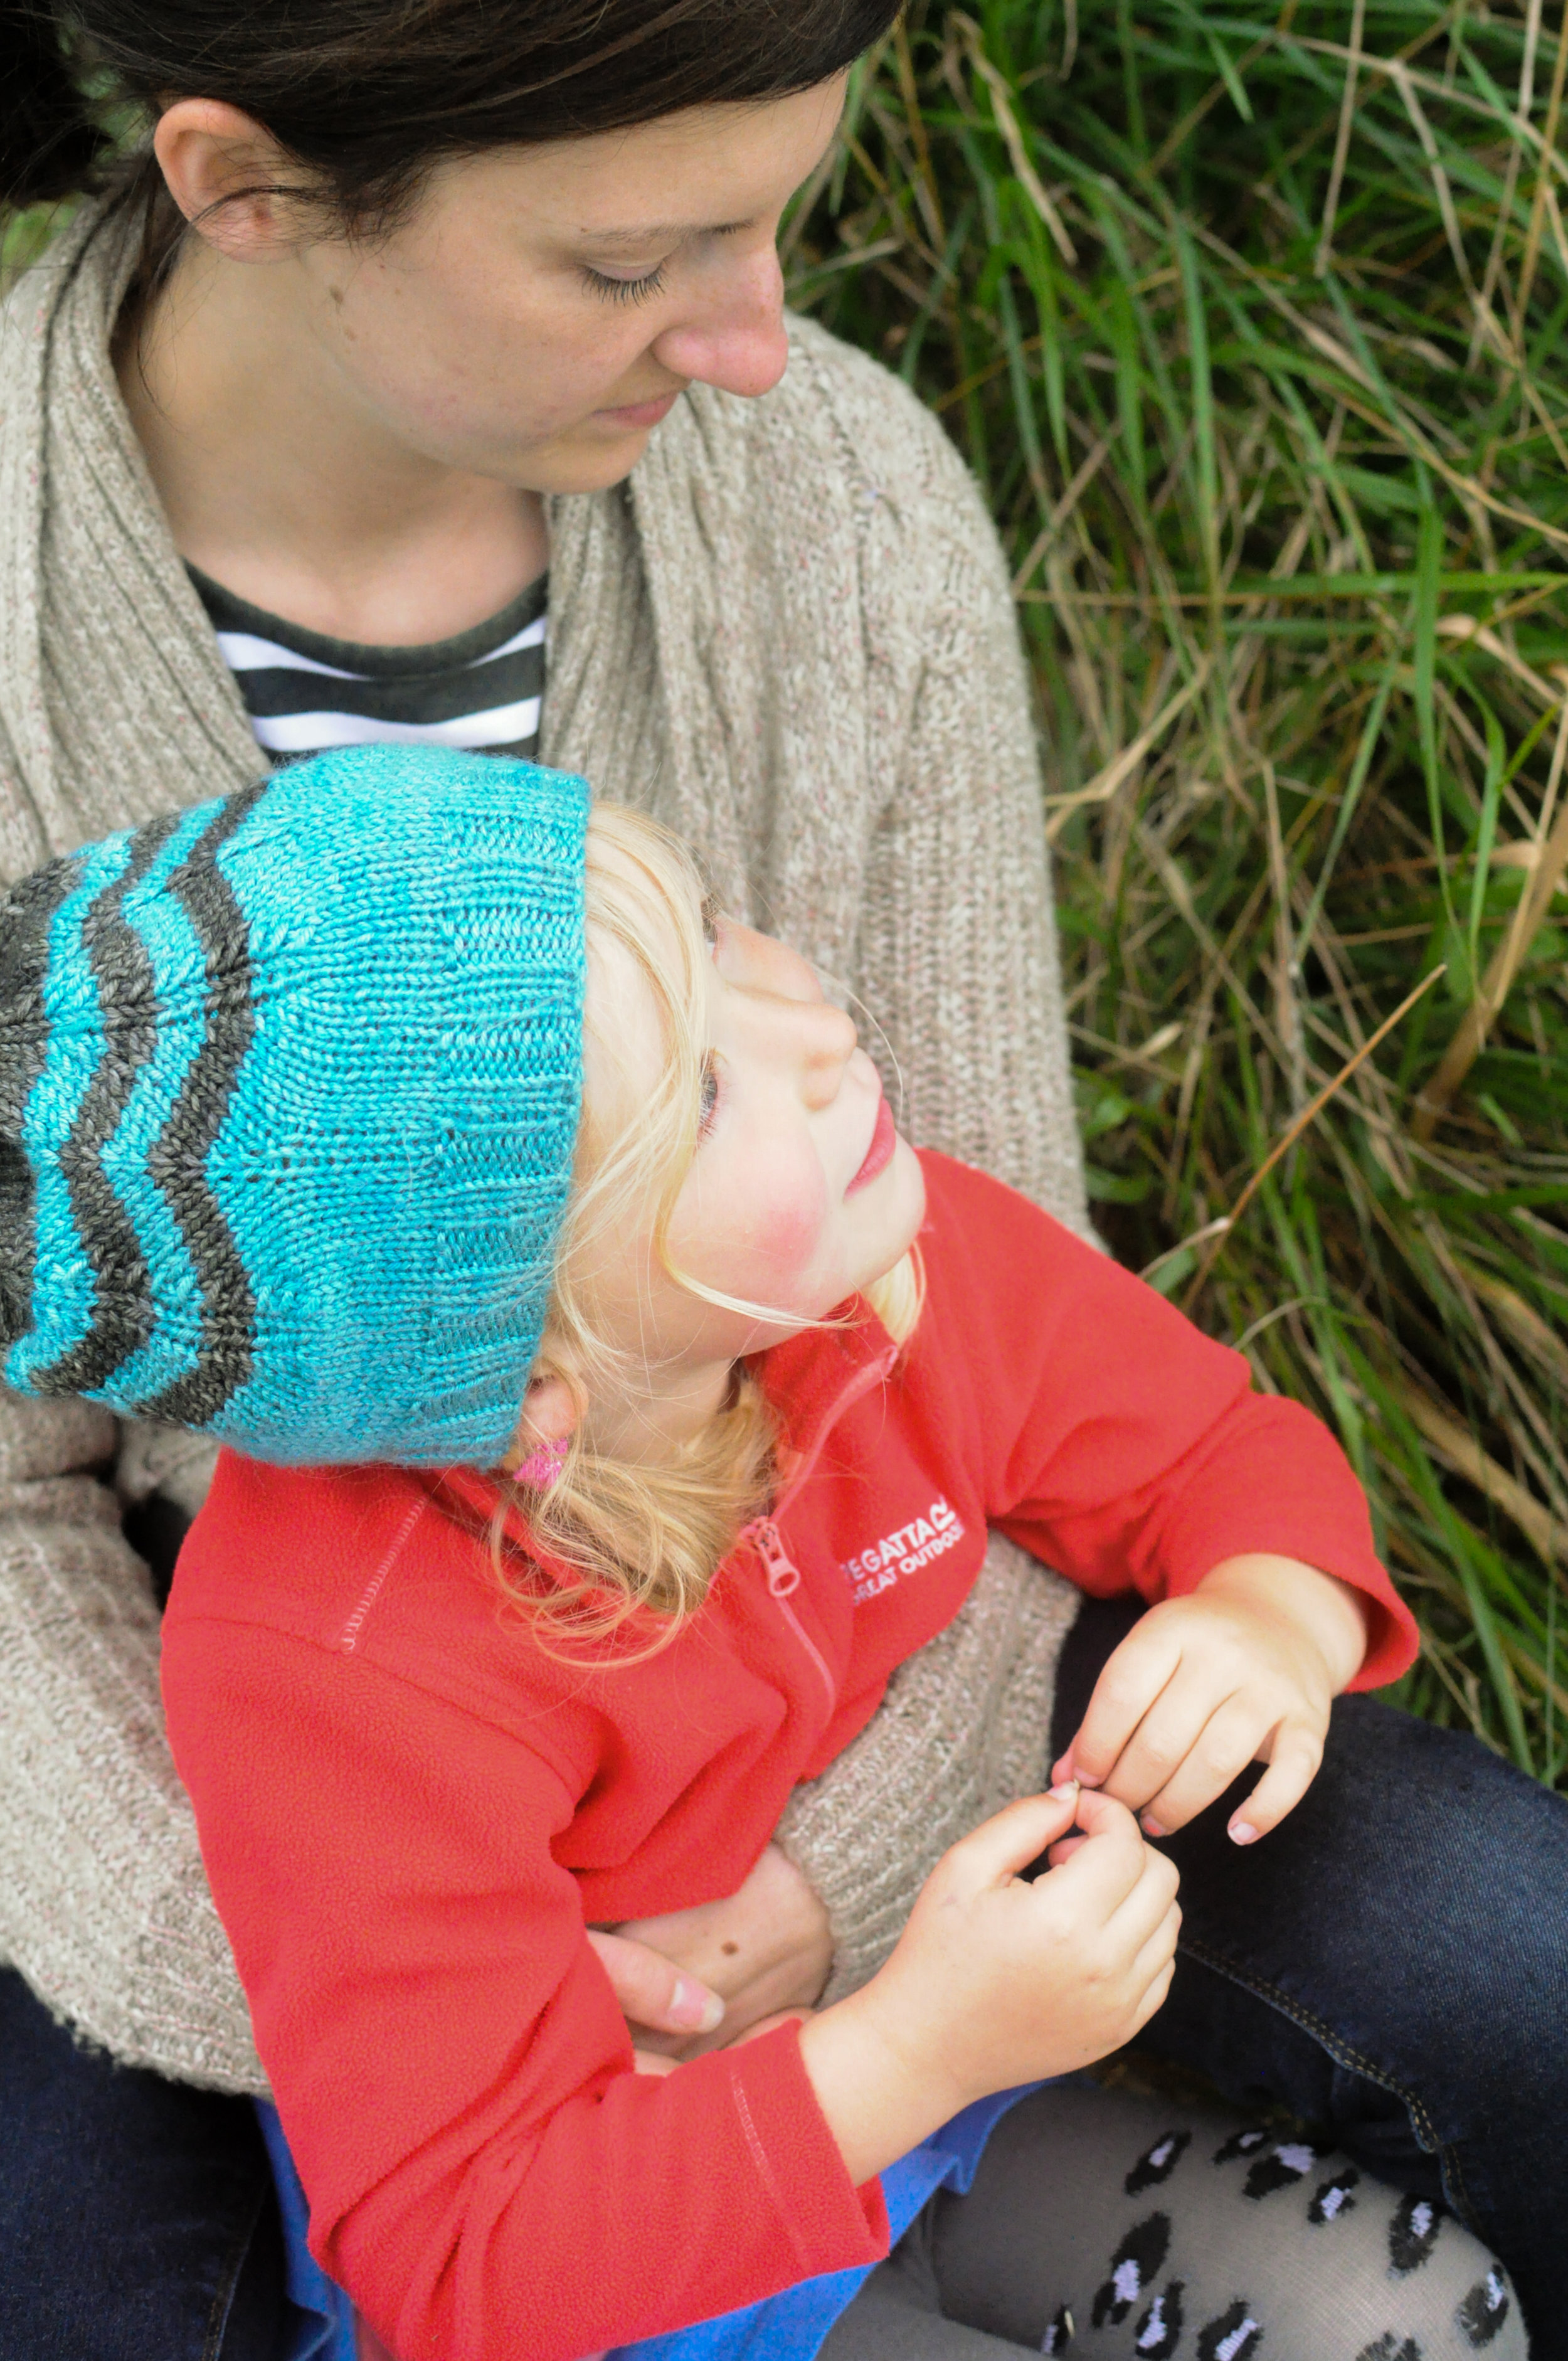 My Knit Tribe- My lil sis & daughter. Cuties in knitwear always